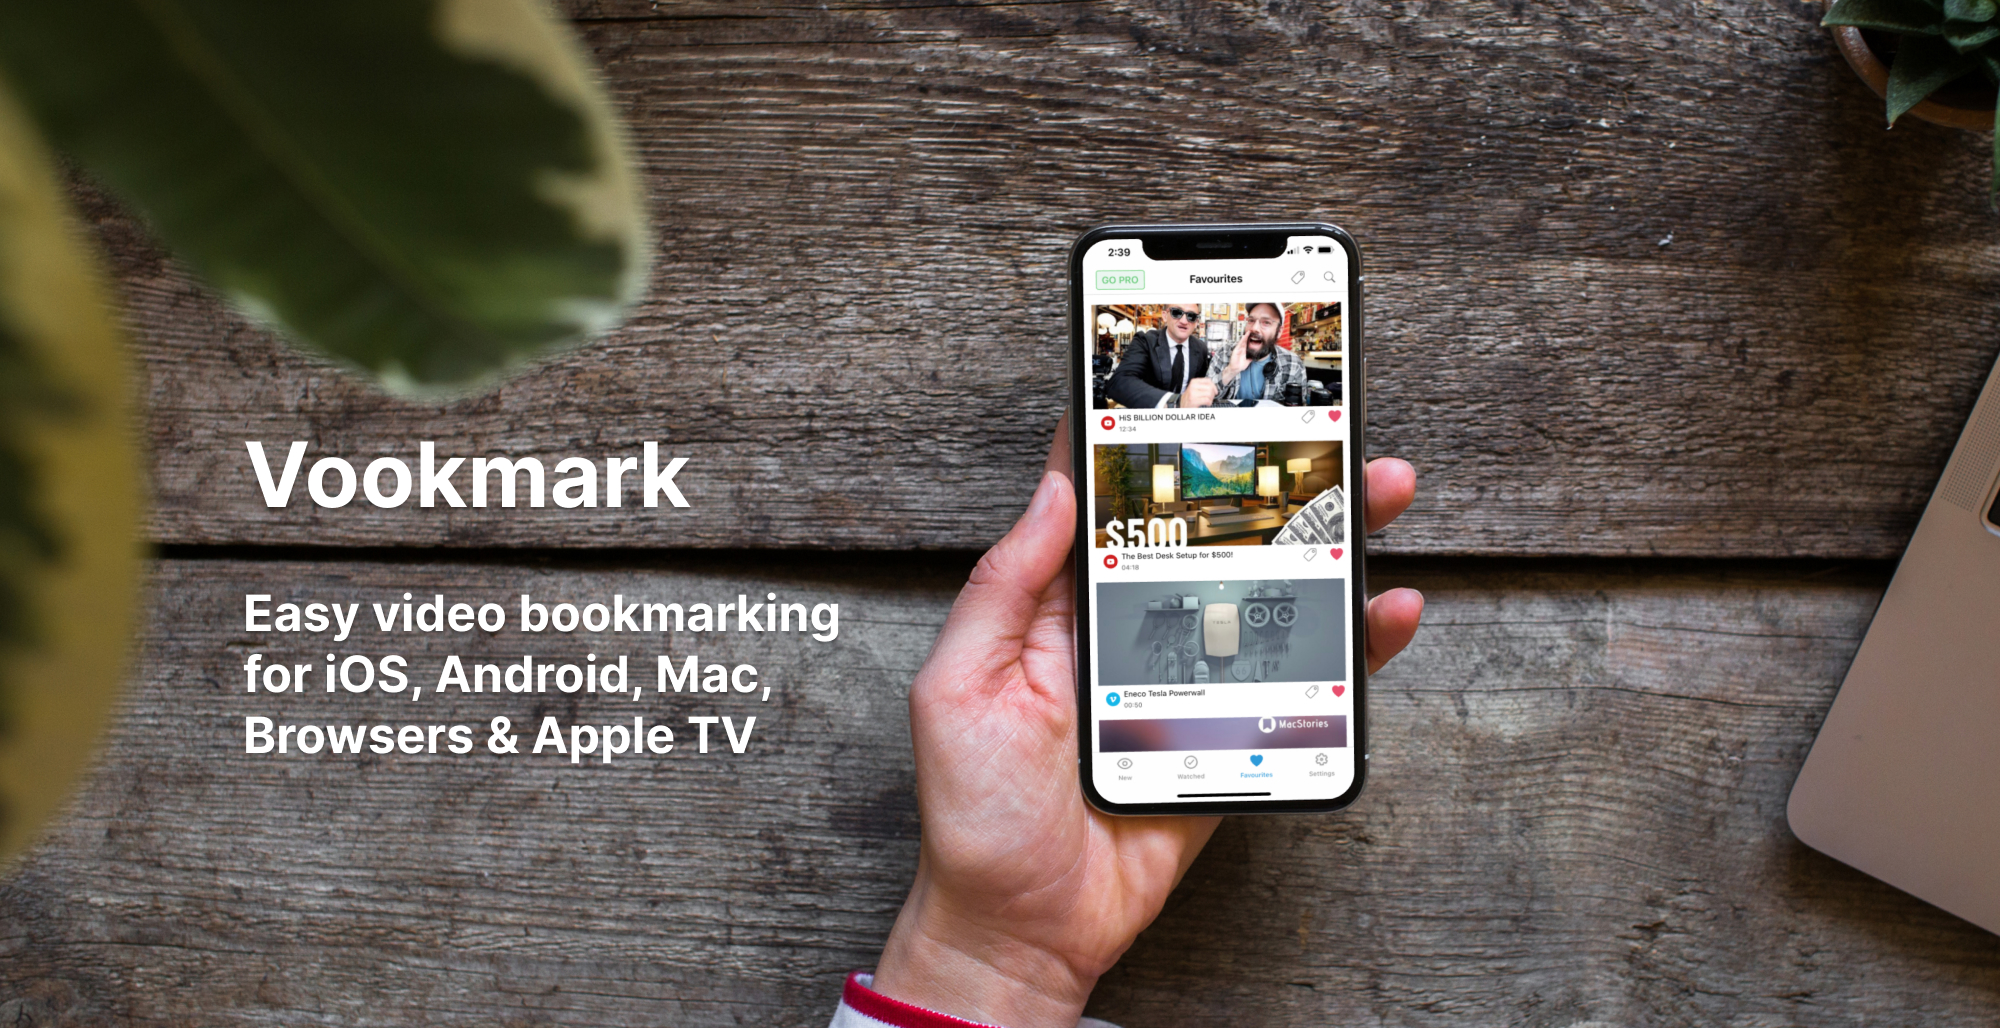 allows you to bookmark videos across the web and mobile and watch it later on your browser, Apple TV, iOS or Android devices